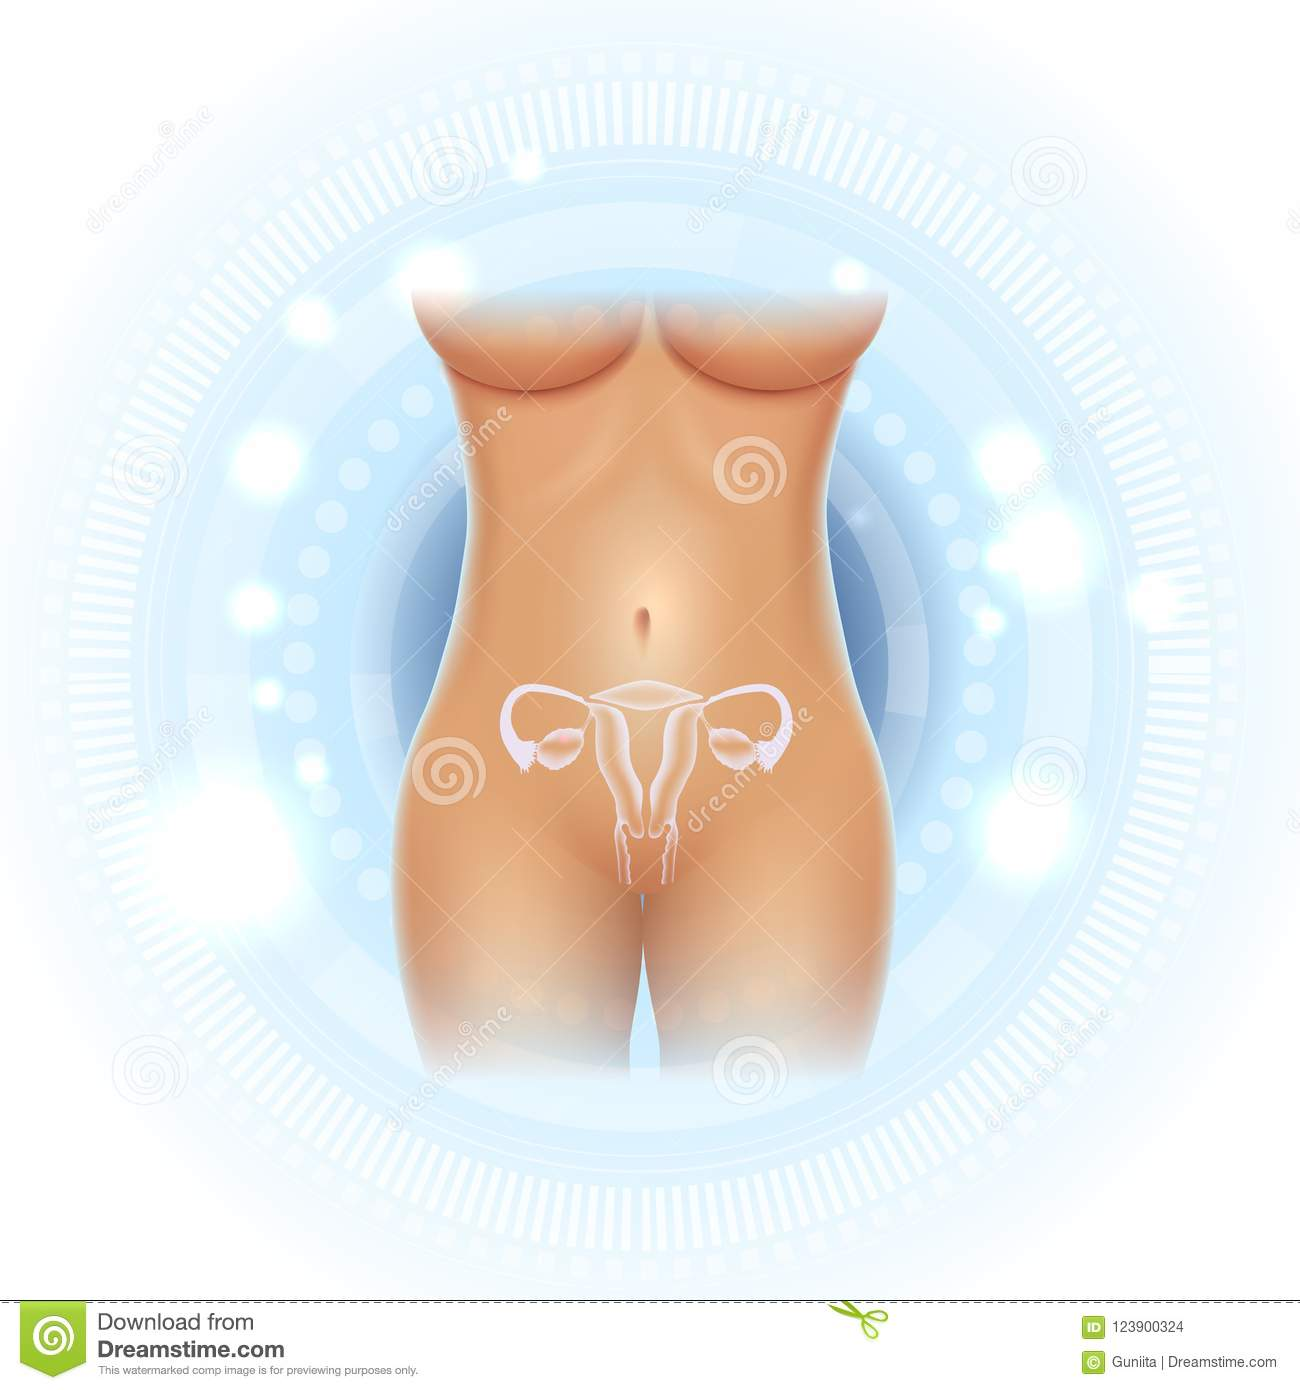 Female Body And Reproductive Organs Stock Vector Illustration Of